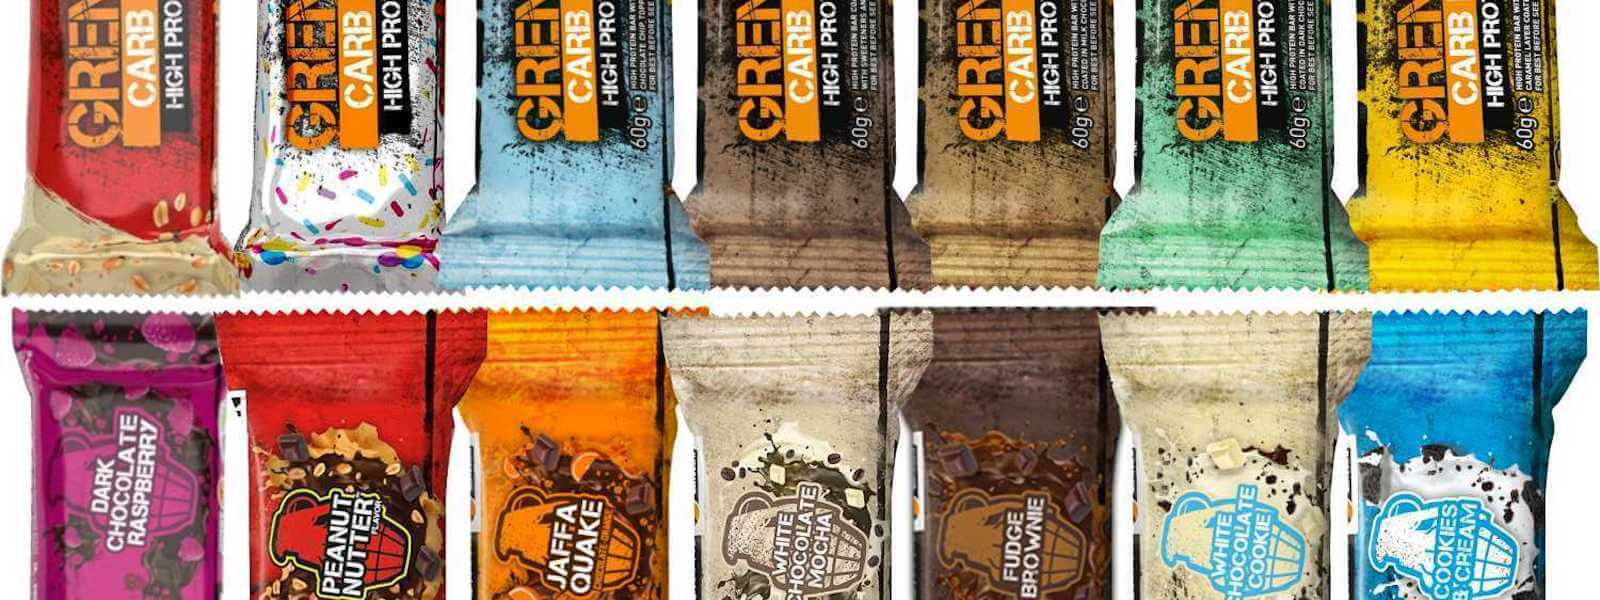 Grenade Bars High Protein, Low Carb Snack at Supplement Superstore Canada